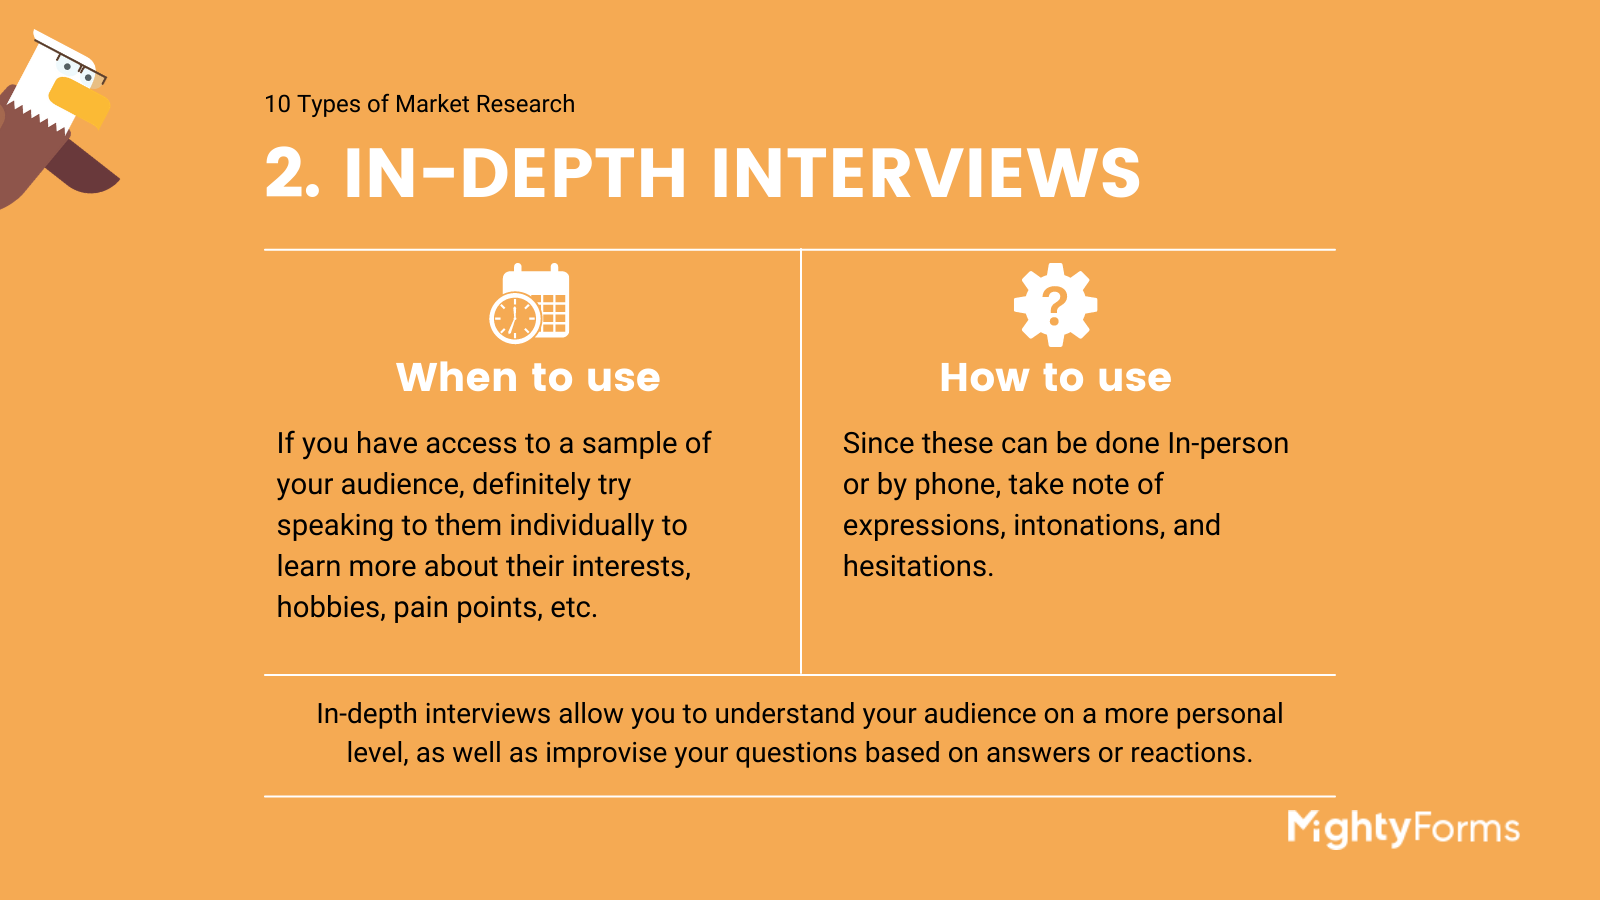 Types of Market Research - In-depth interviews - infographic_ MightyForms